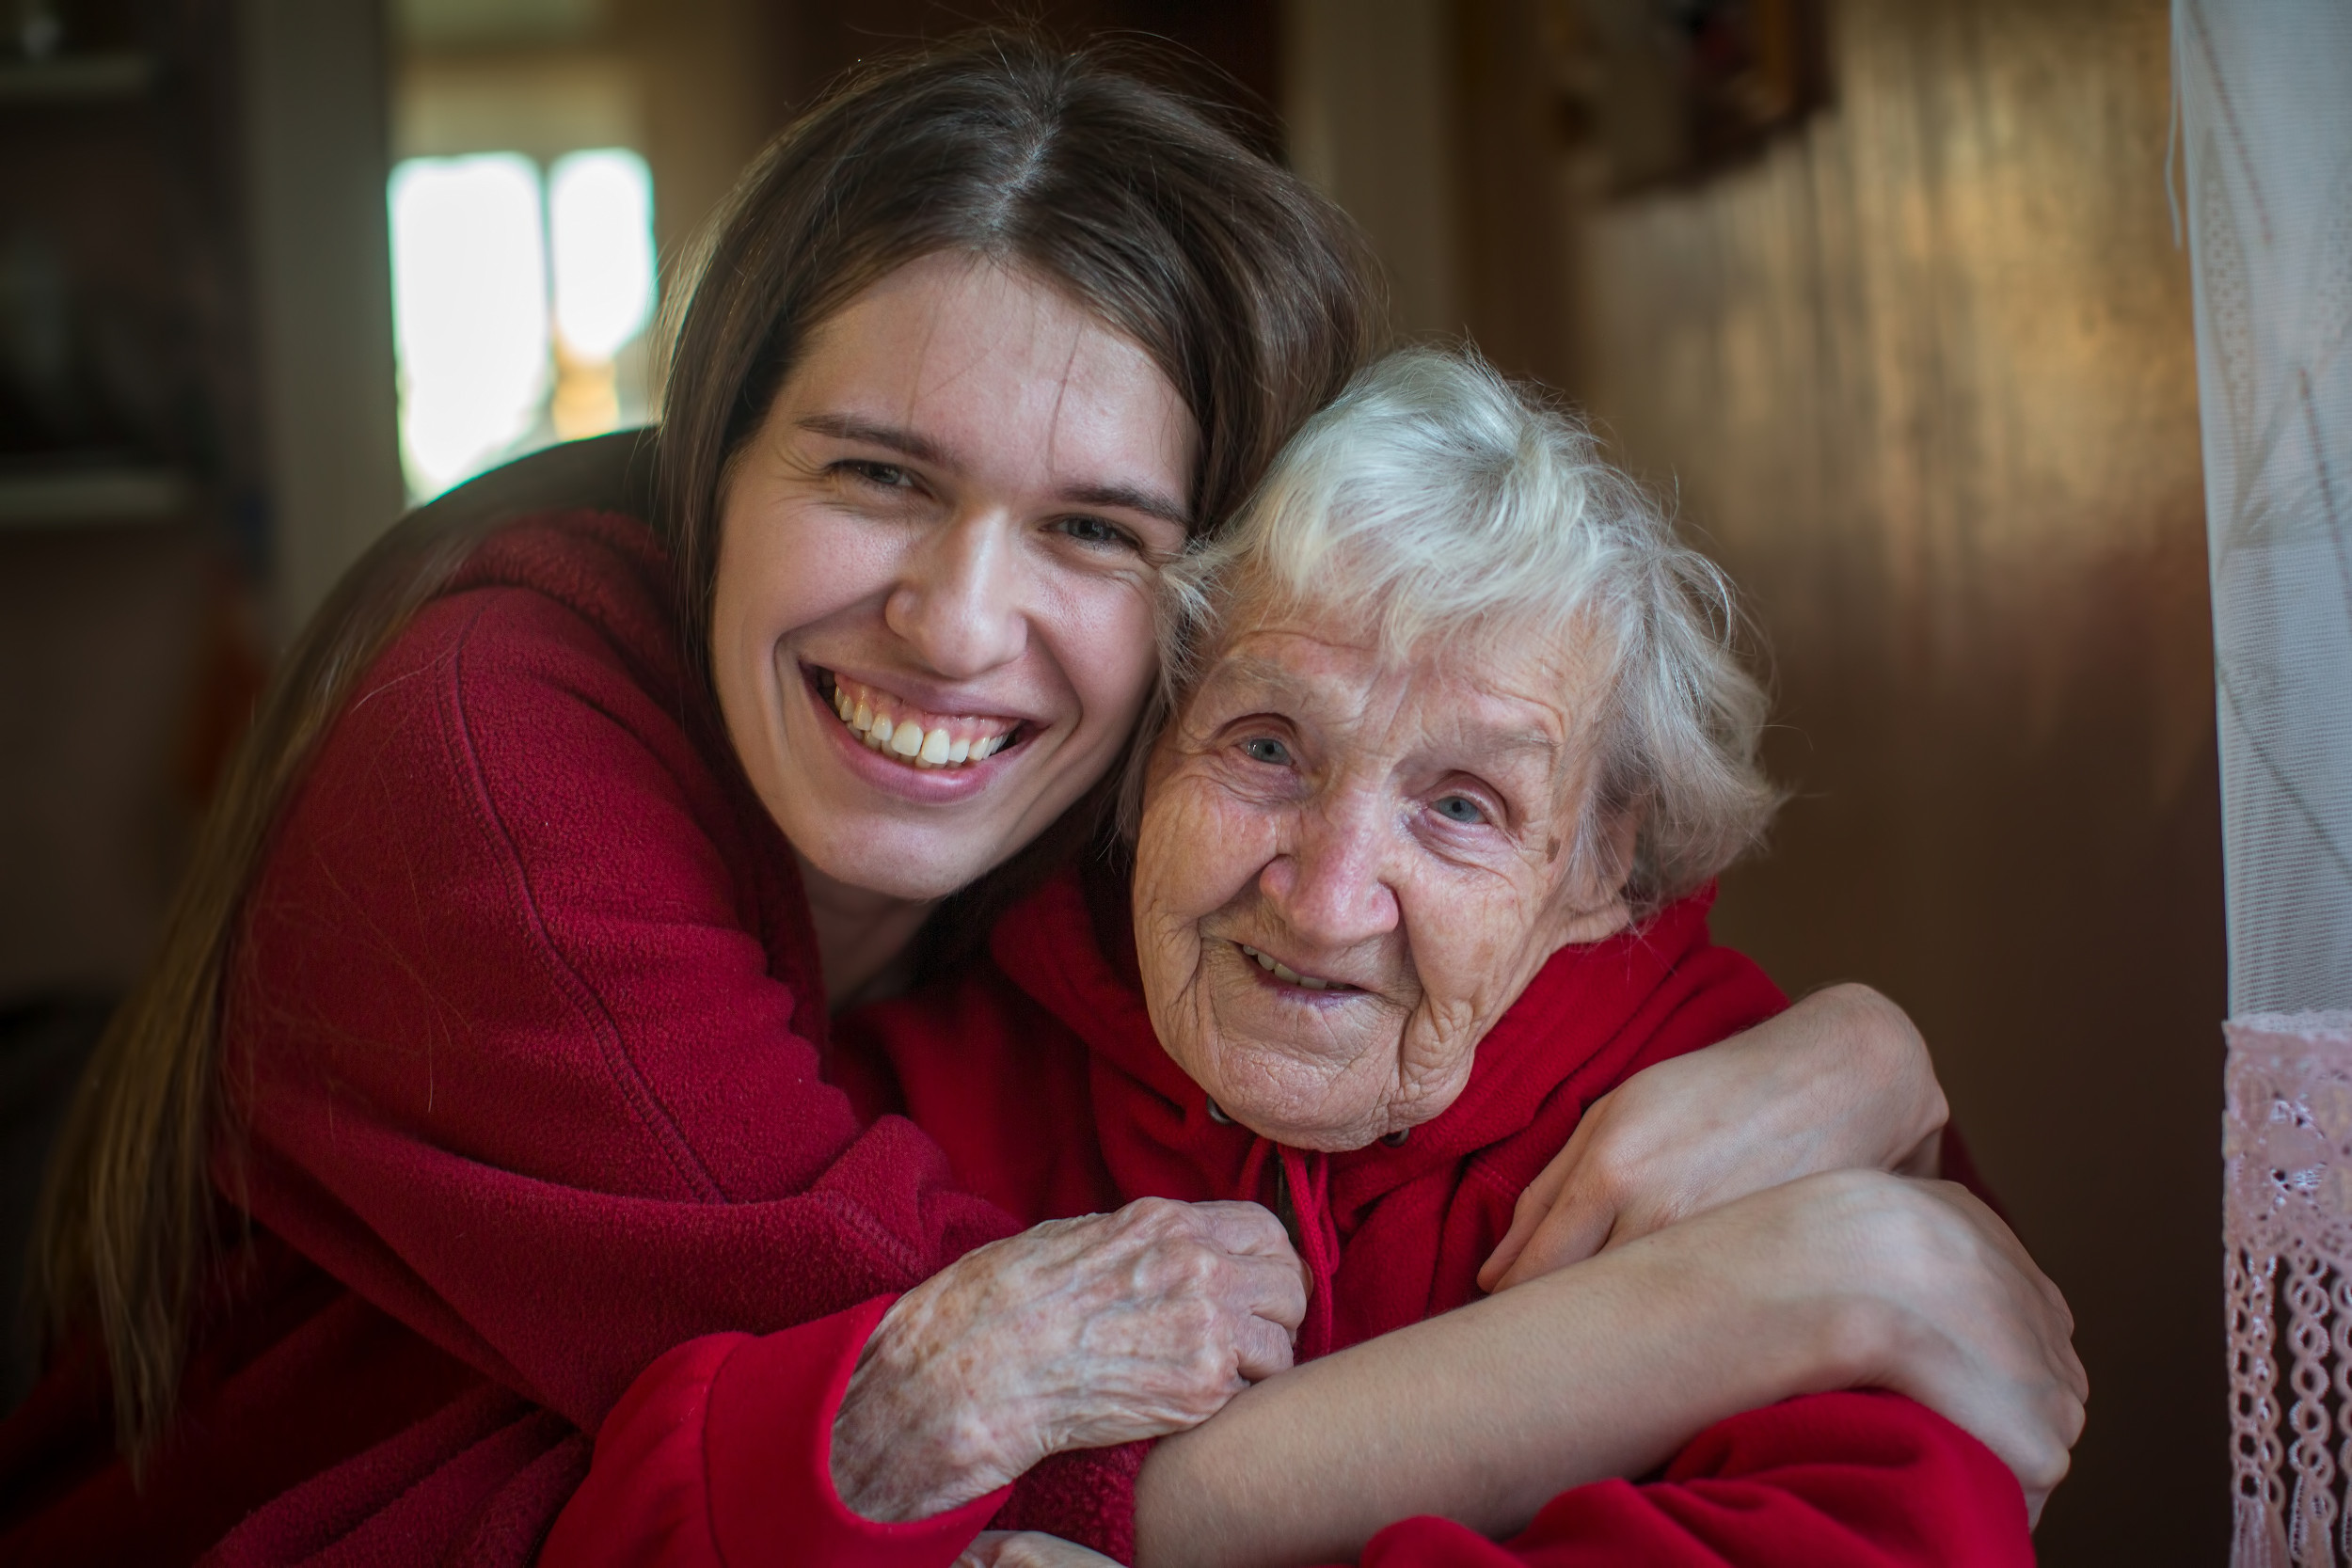 Trent Dementia image: photo of two women hugging